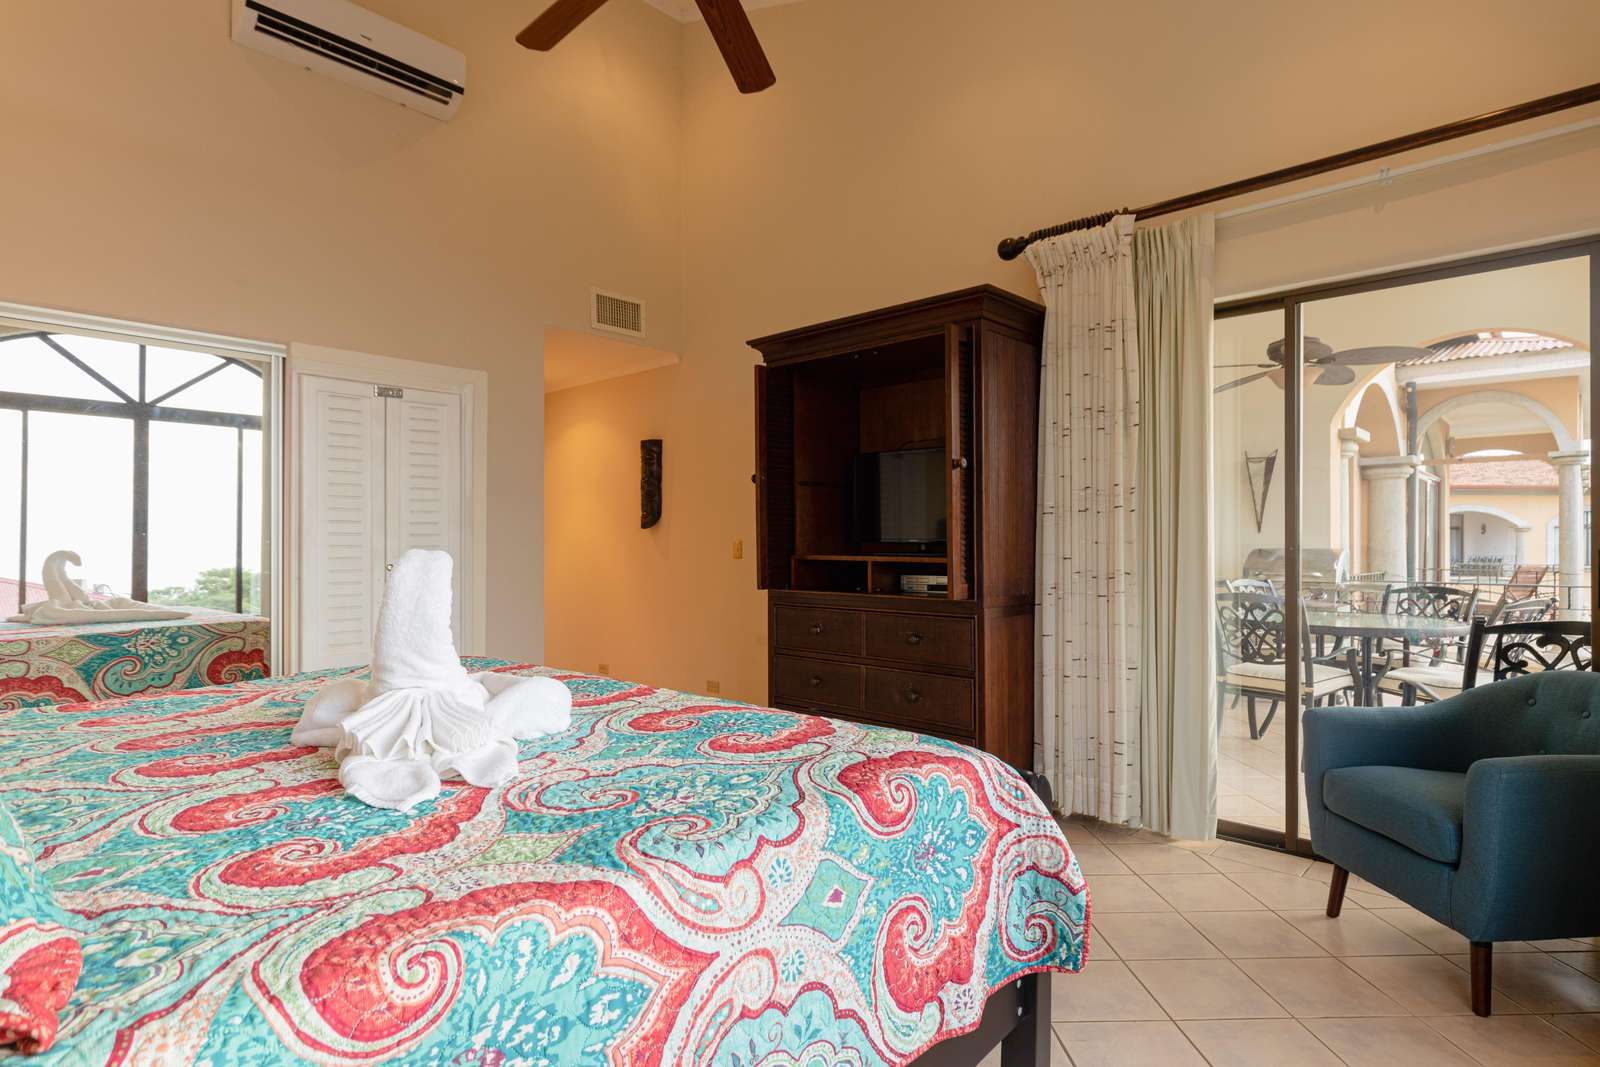 Guest bedroom, king bed, private bathroom